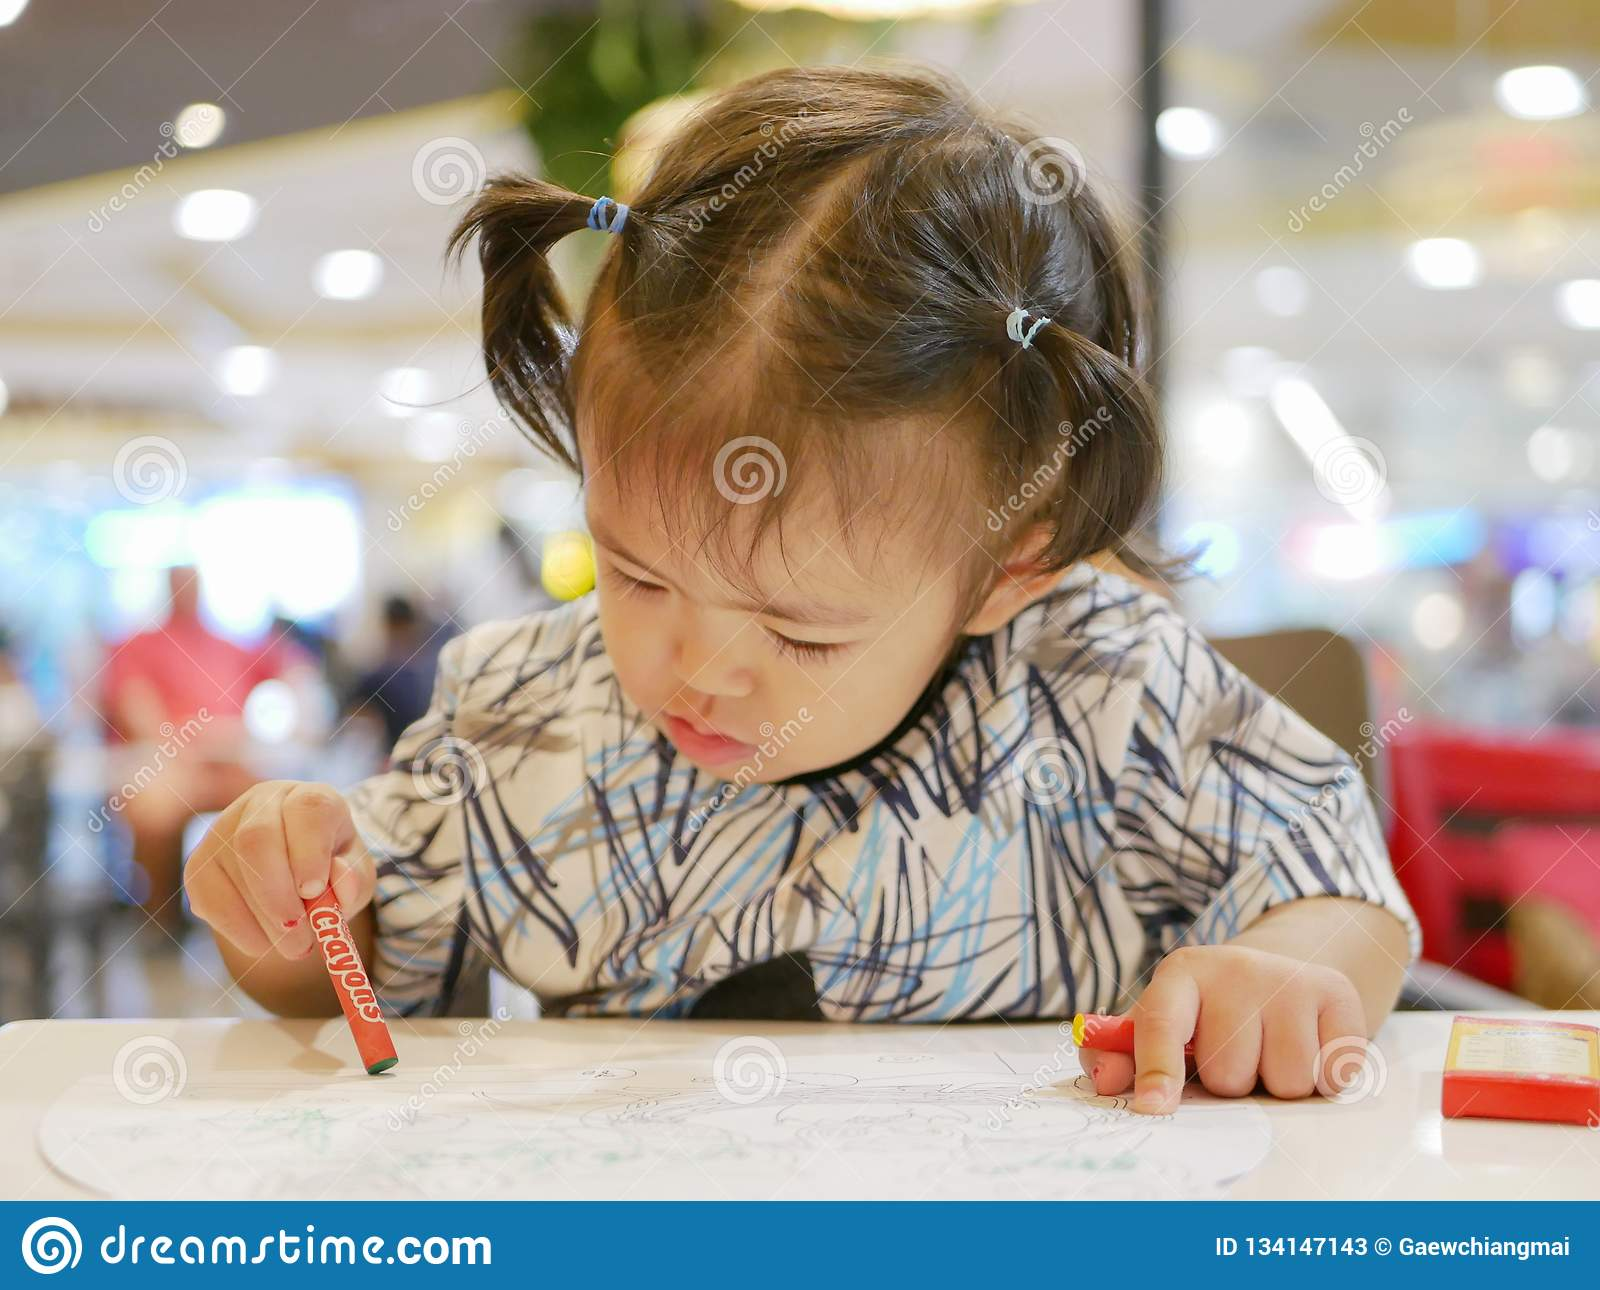 Little Asian Baby Girl Learning To Grasp A Crayon And Do Painting By